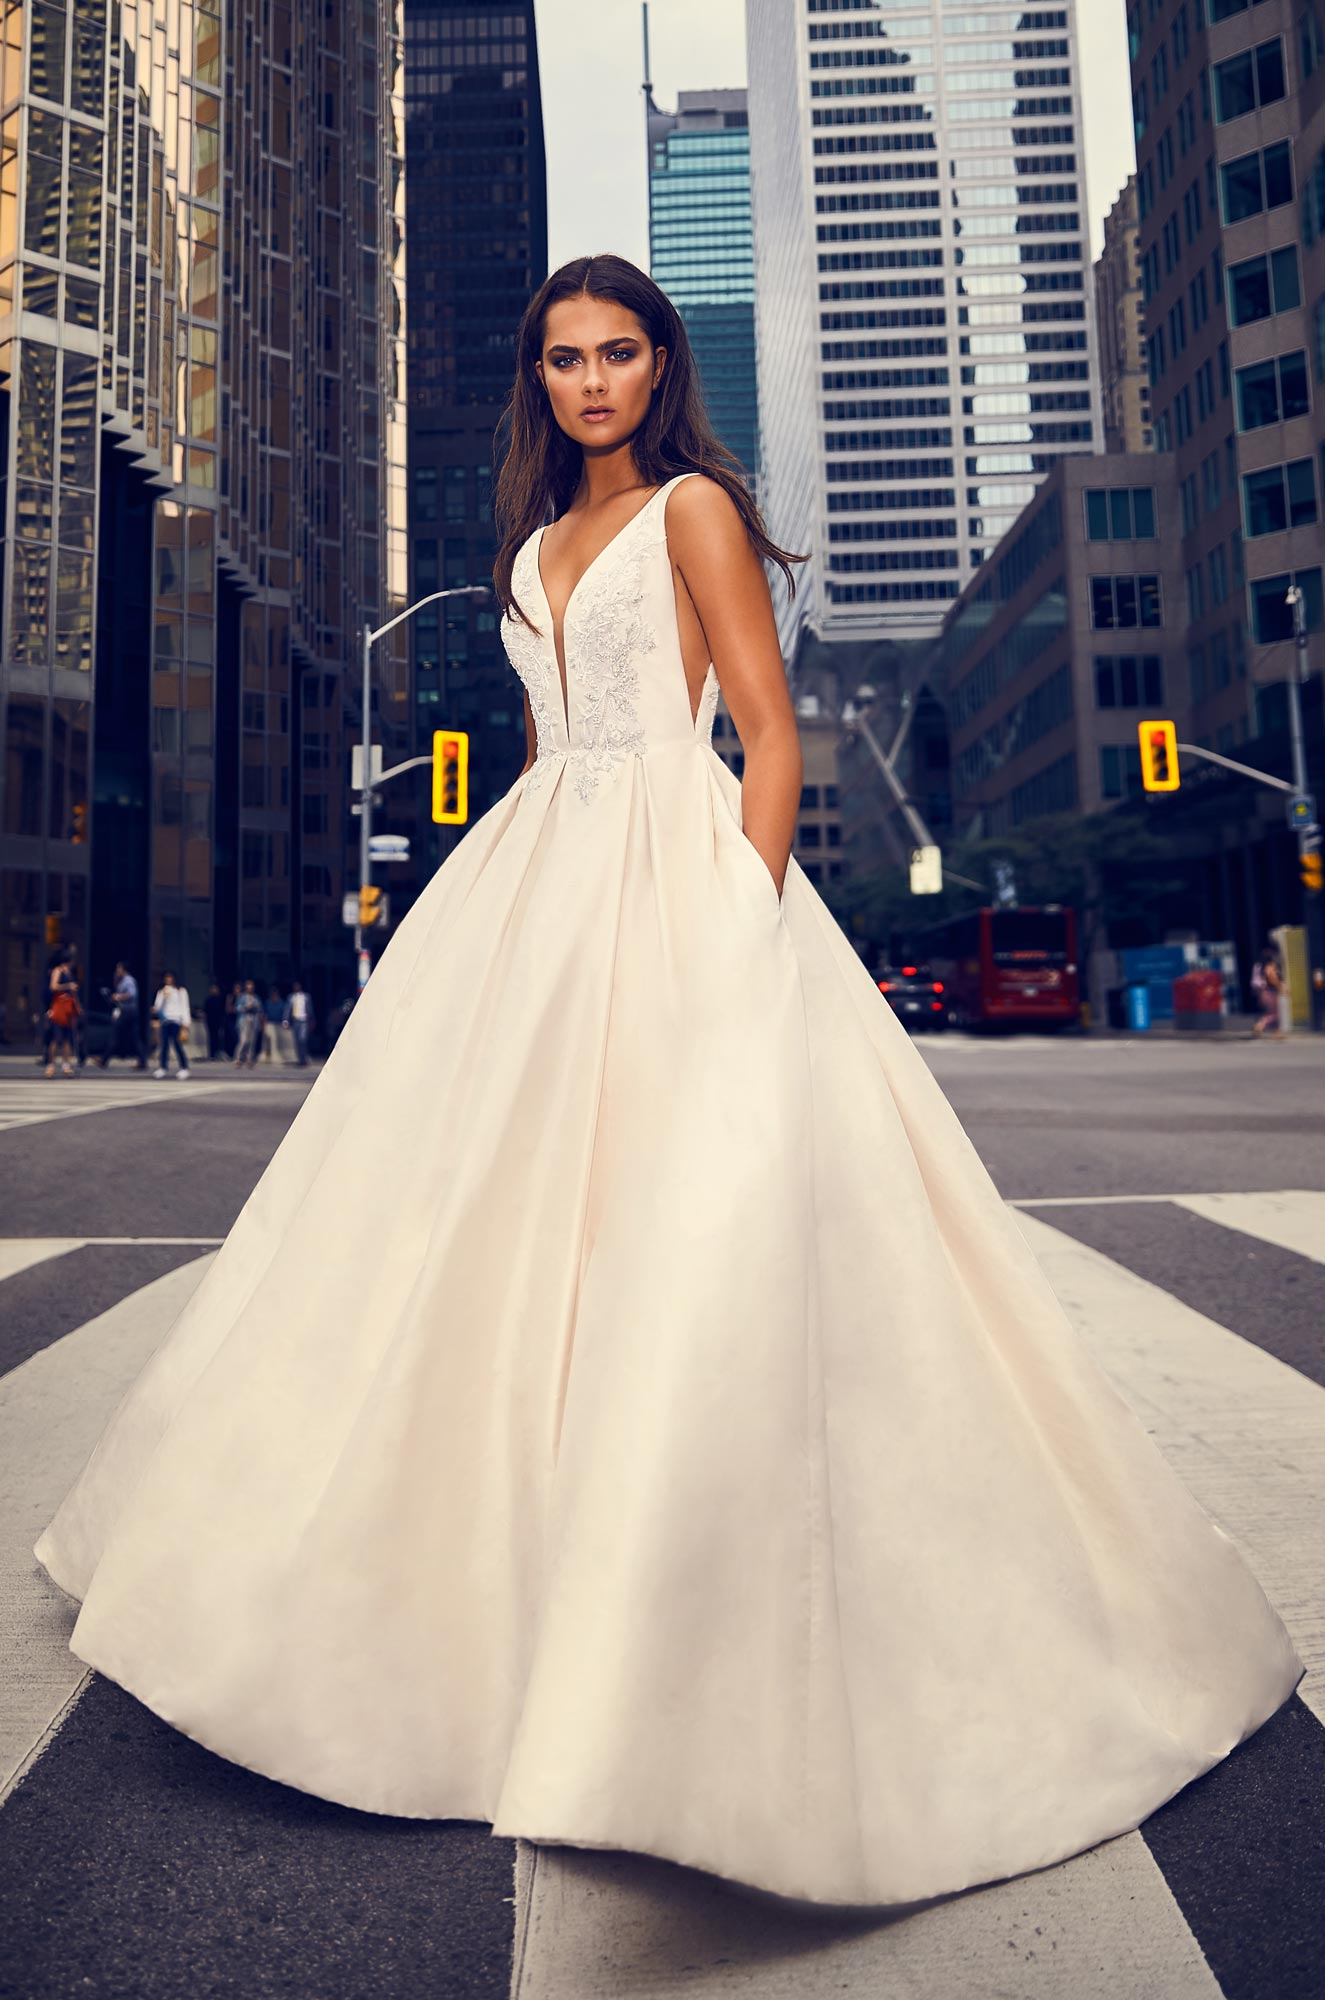 Mira Couture Paloma Blanca 4825 Wedding Dress Bridal Gown Chicago Boutique Back Full